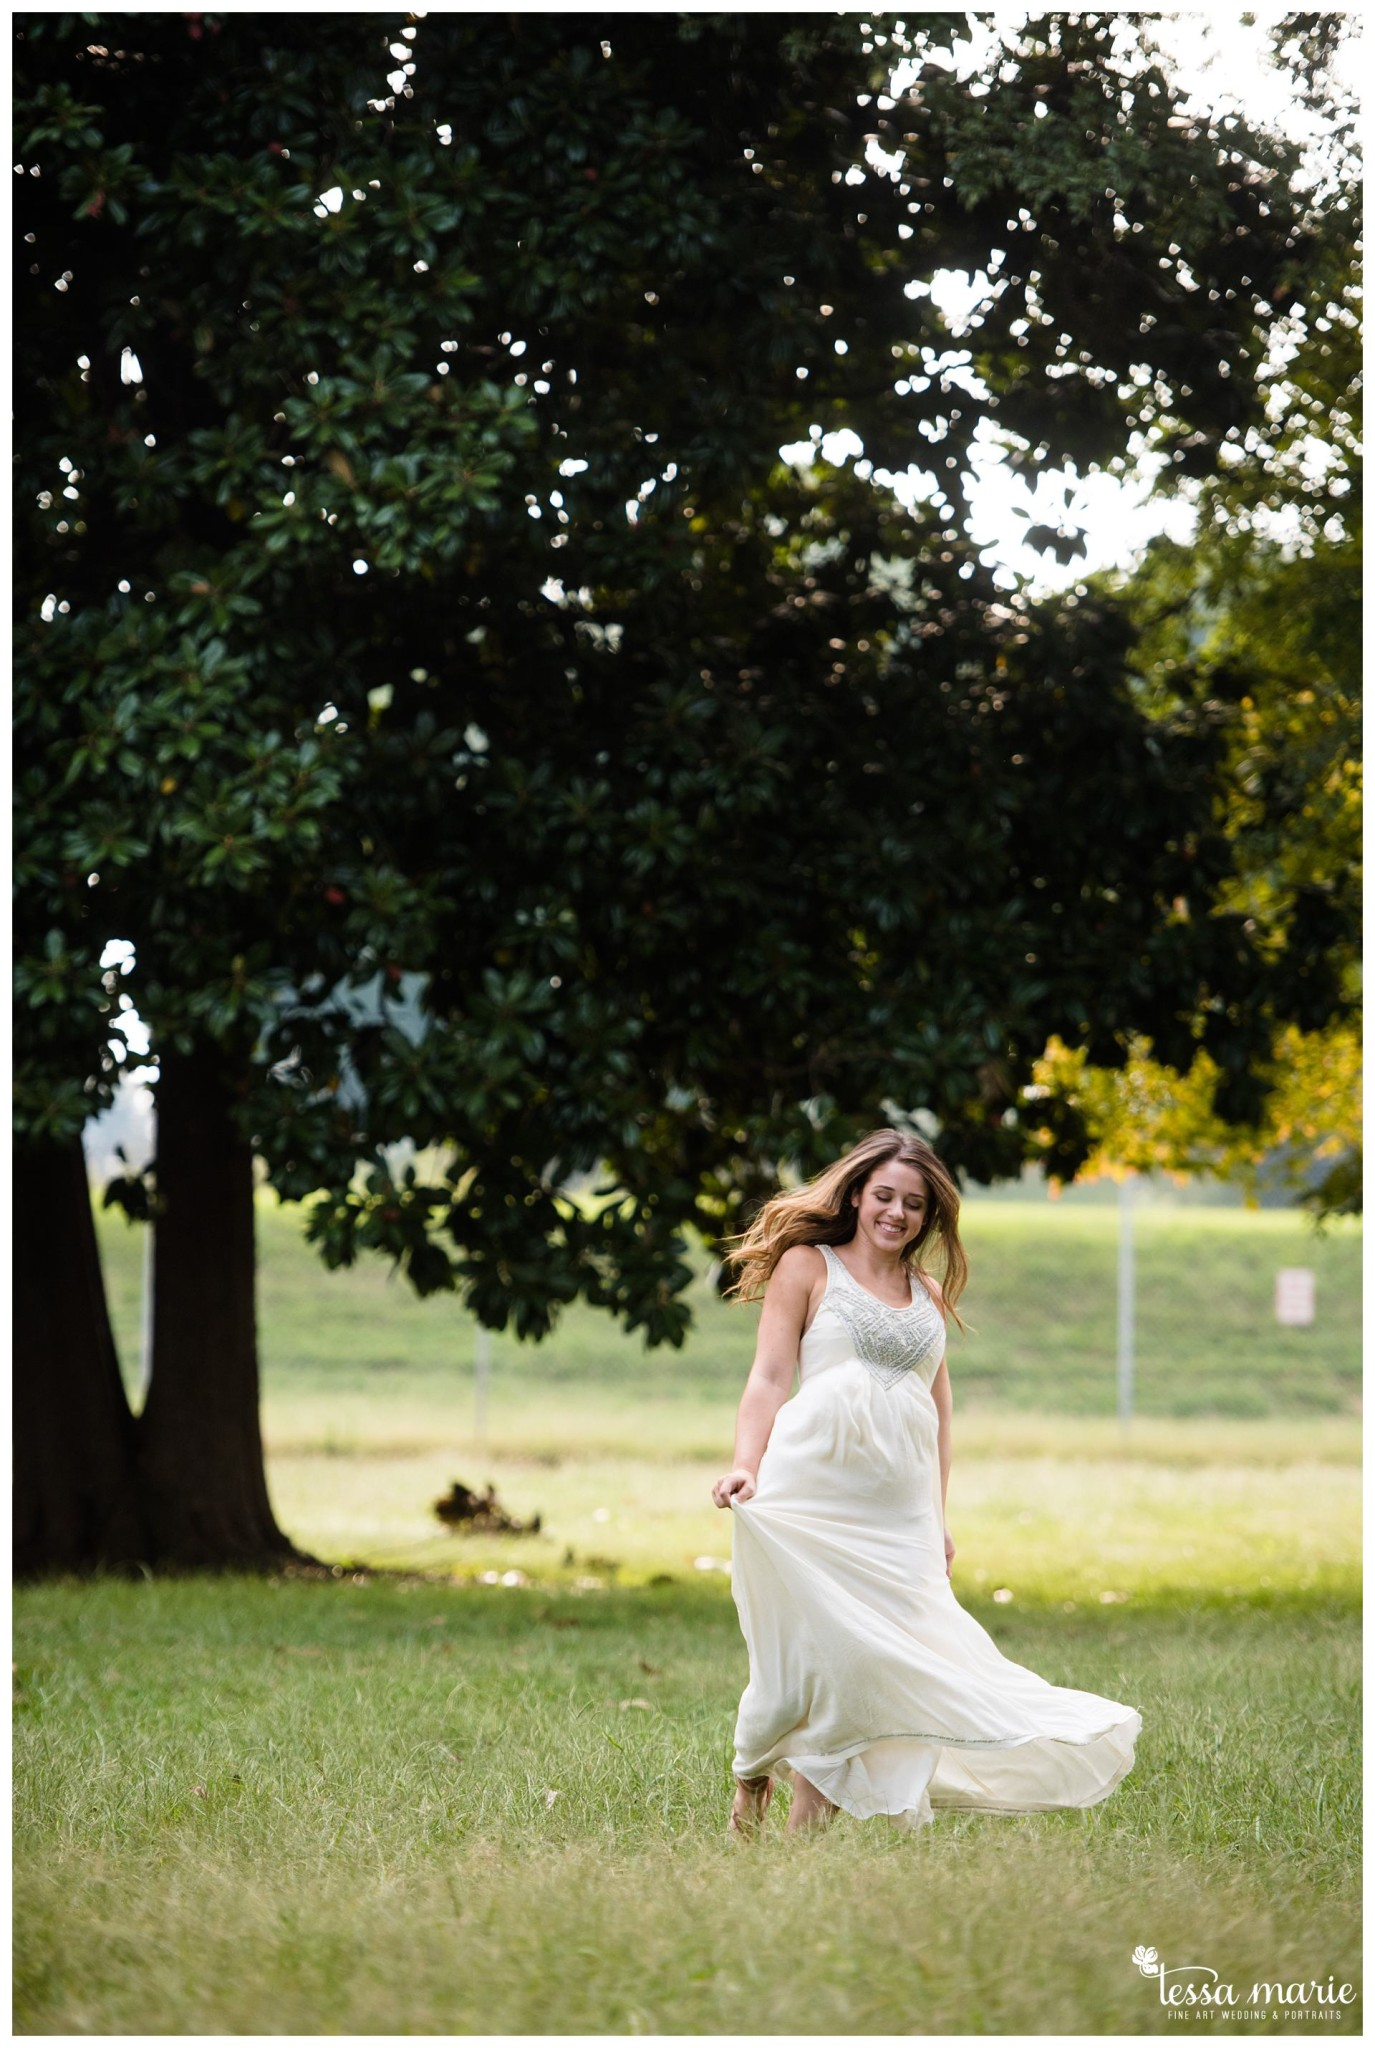 tessa_marie_weddings_legacy_story_focused_wedding_pictures_atlanta_wedding_photographer_family_pictures_portrait_Fine_art_memories_mothers_day_spring_moments_0424